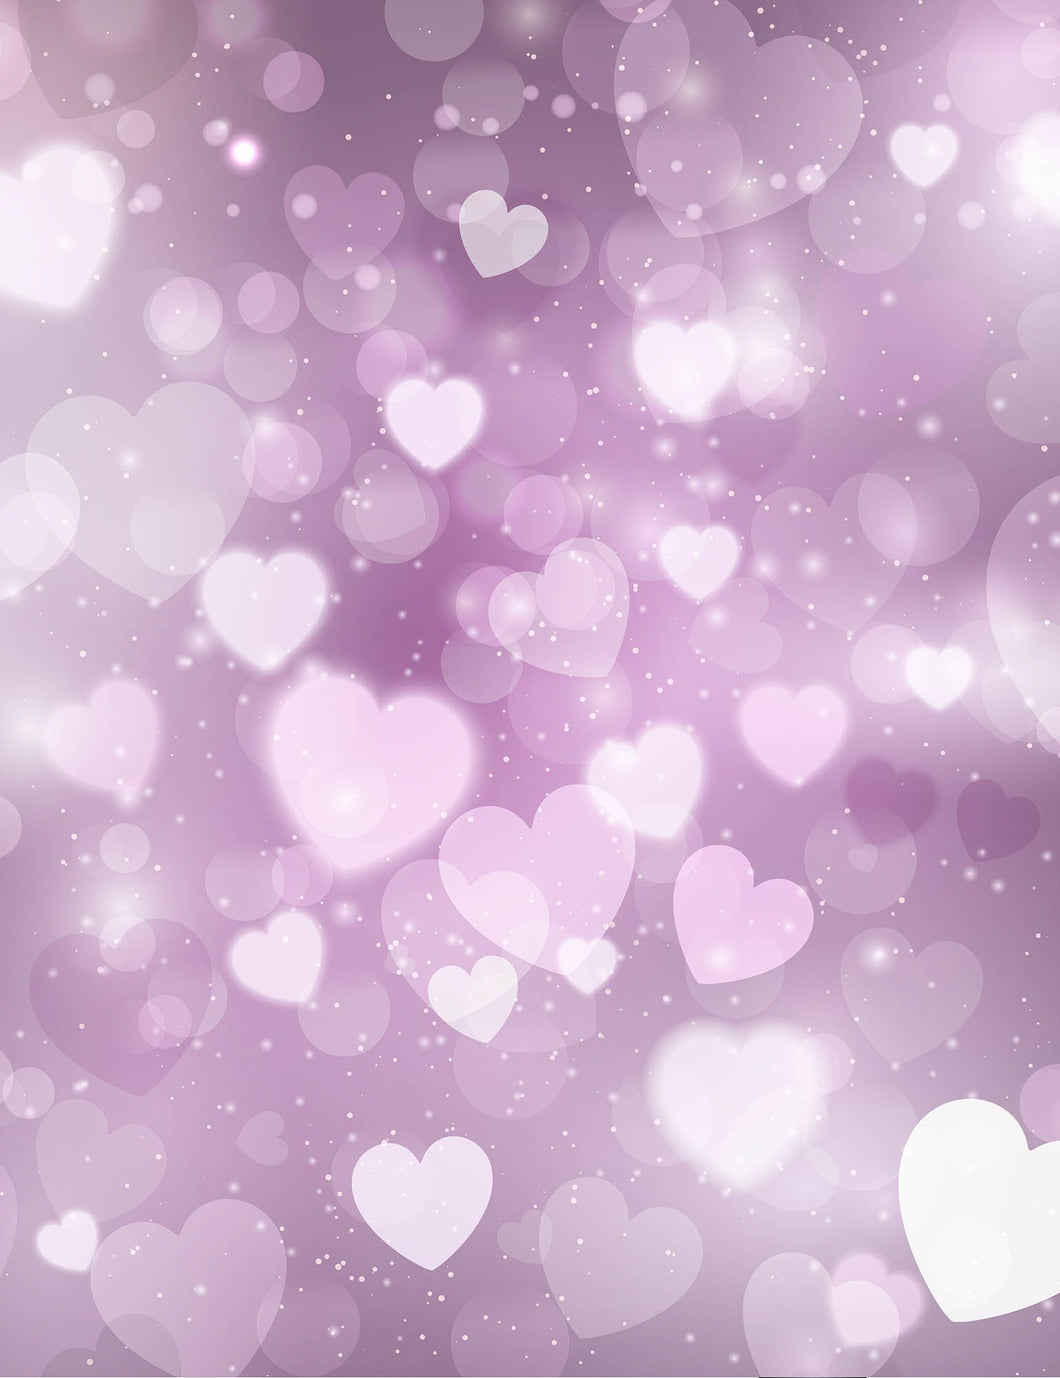 Abstract Bokeh Pink Hearts Sparkle Background For